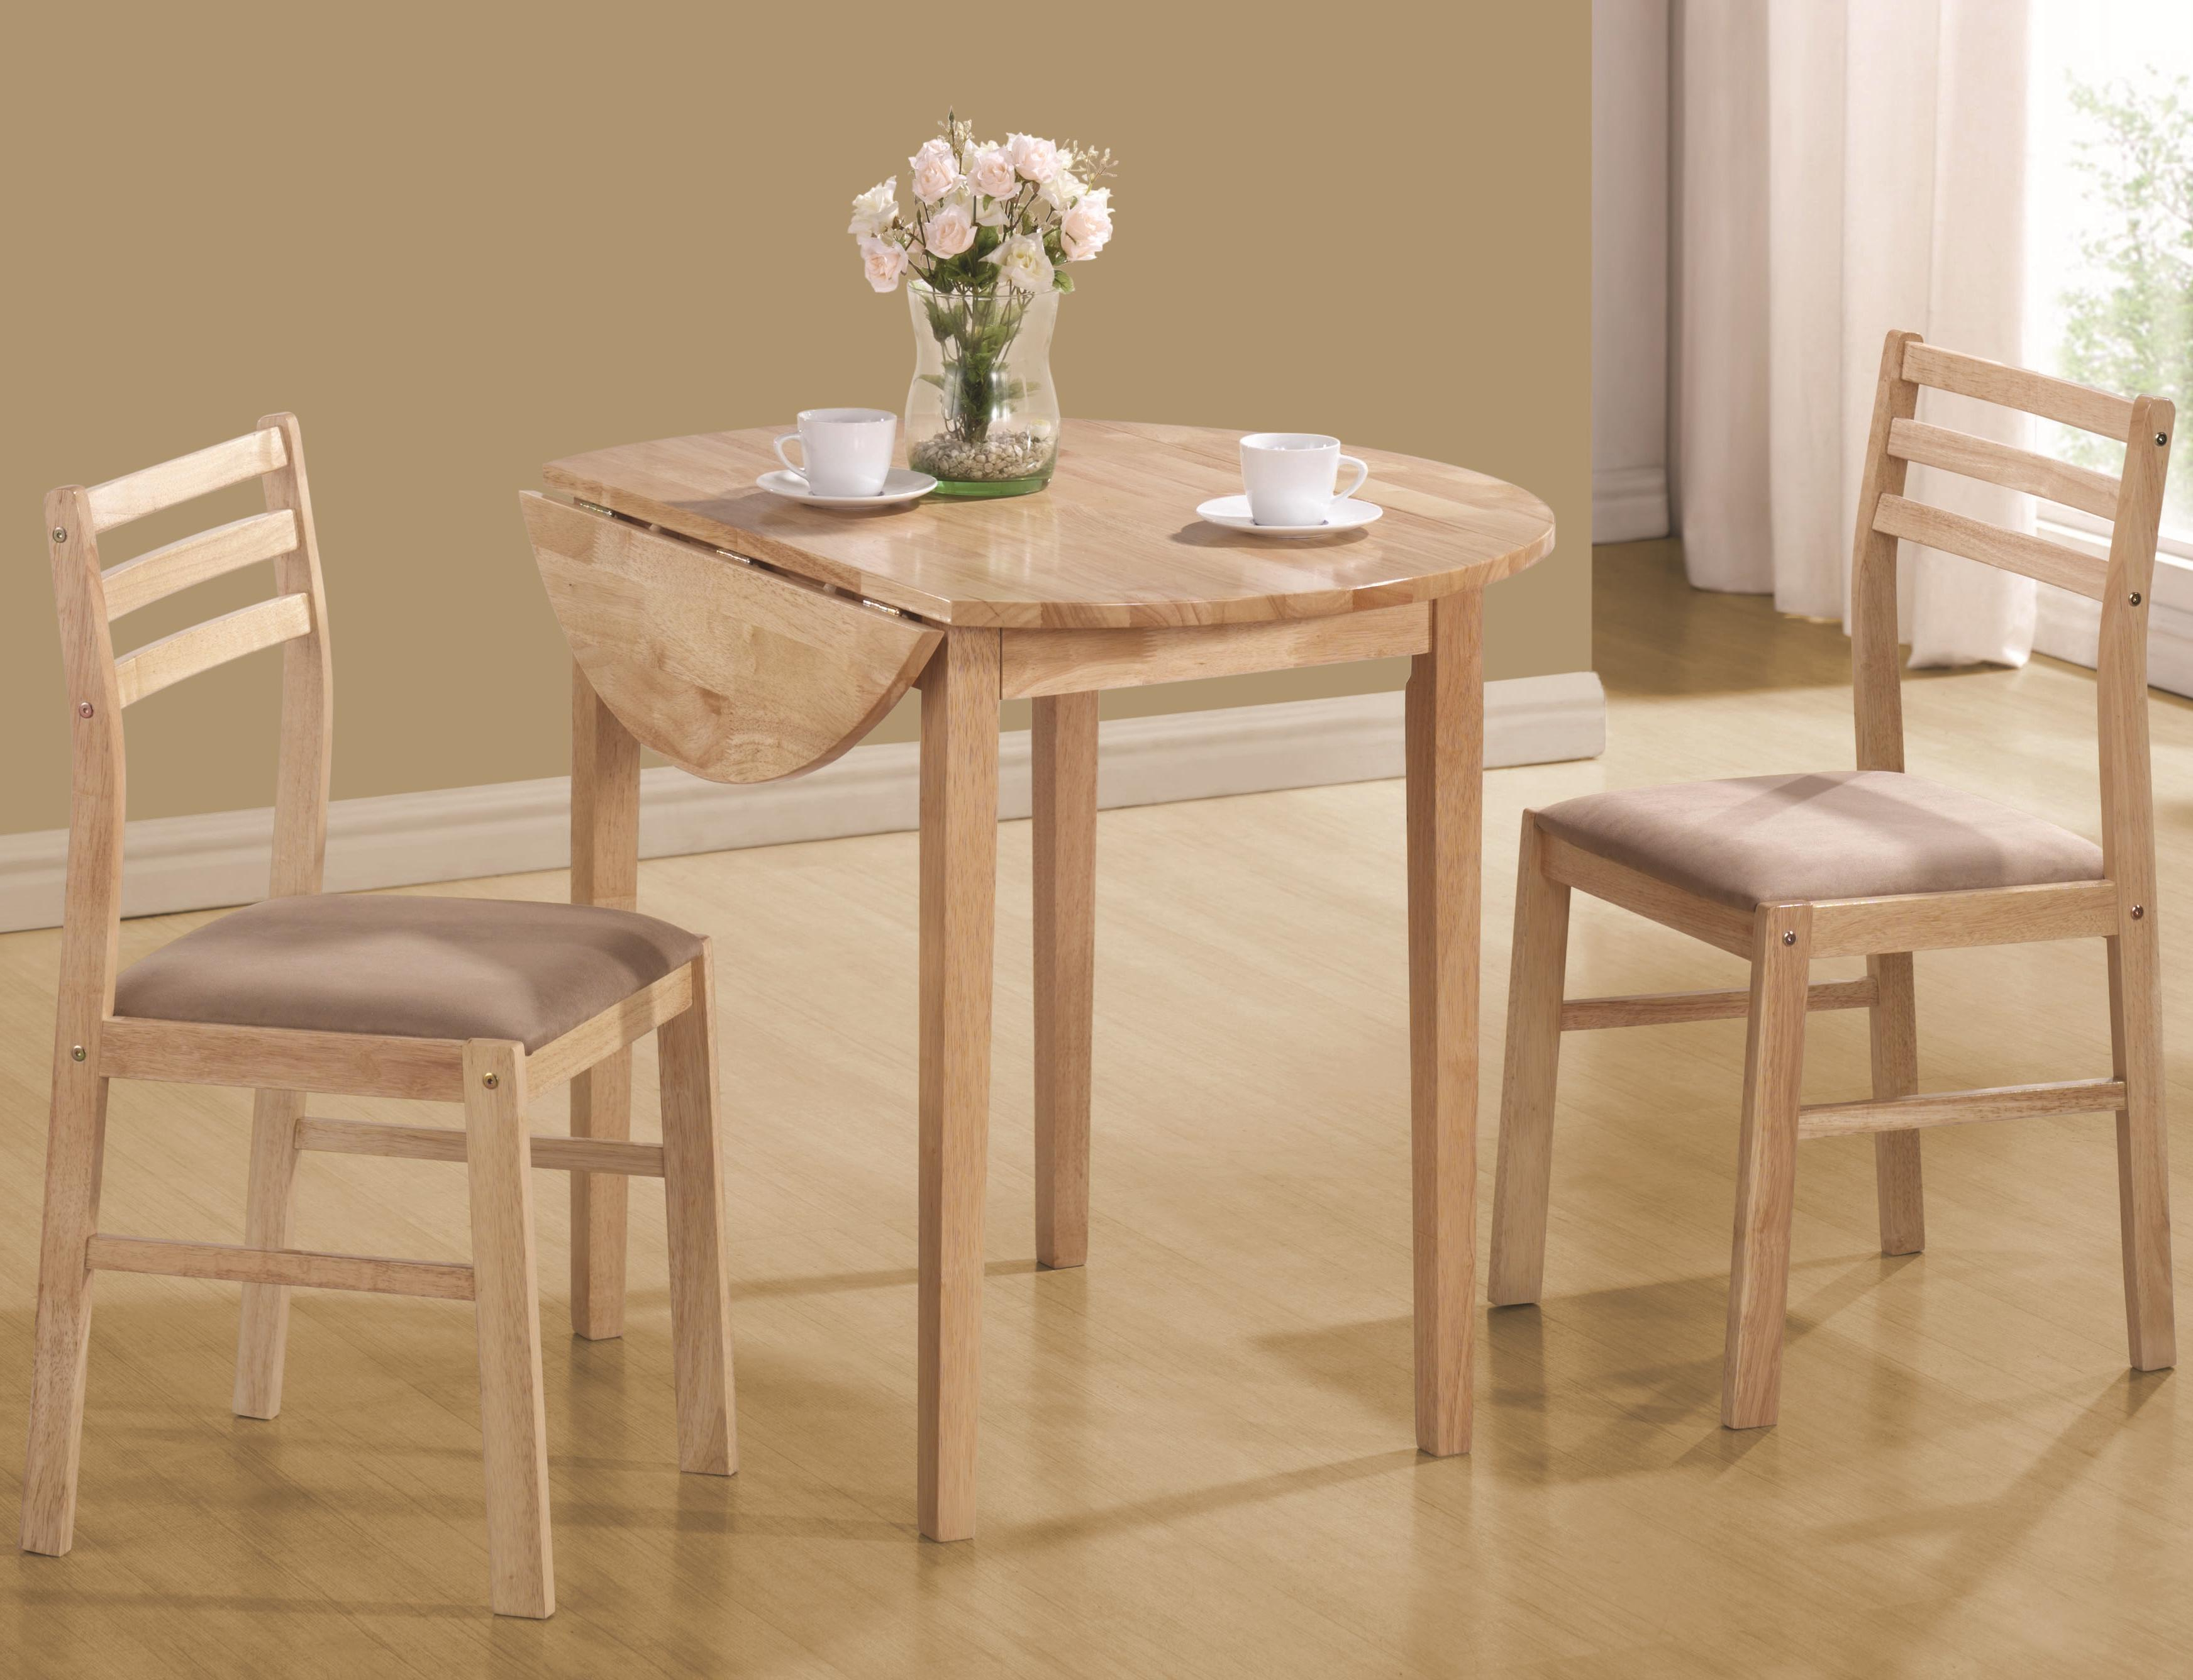 Dinettes Casual 3 Piece Table & Chair Setcoaster At Value City Furniture Pertaining To Best And Newest 3 Piece Dining Sets (View 18 of 20)